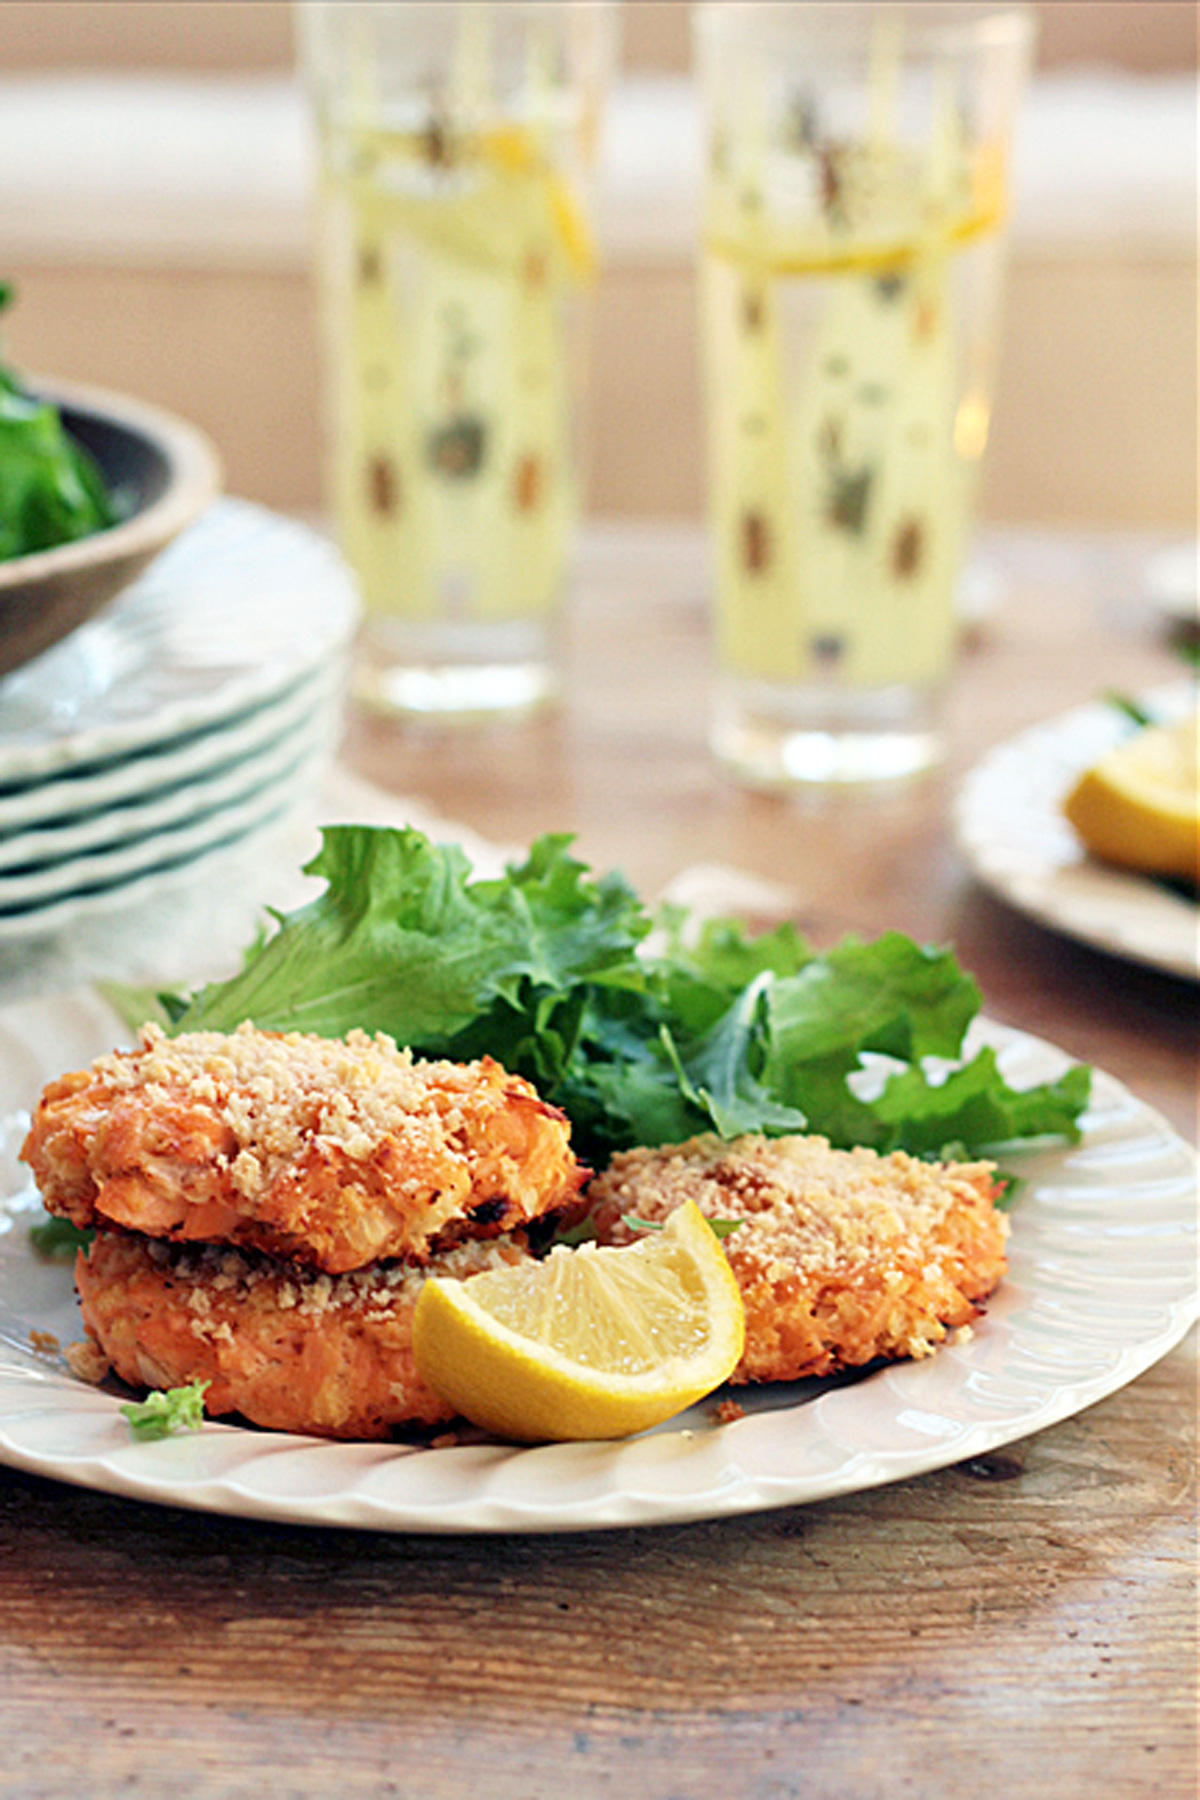 Salmon patties are great in a bun or as a salad topper.